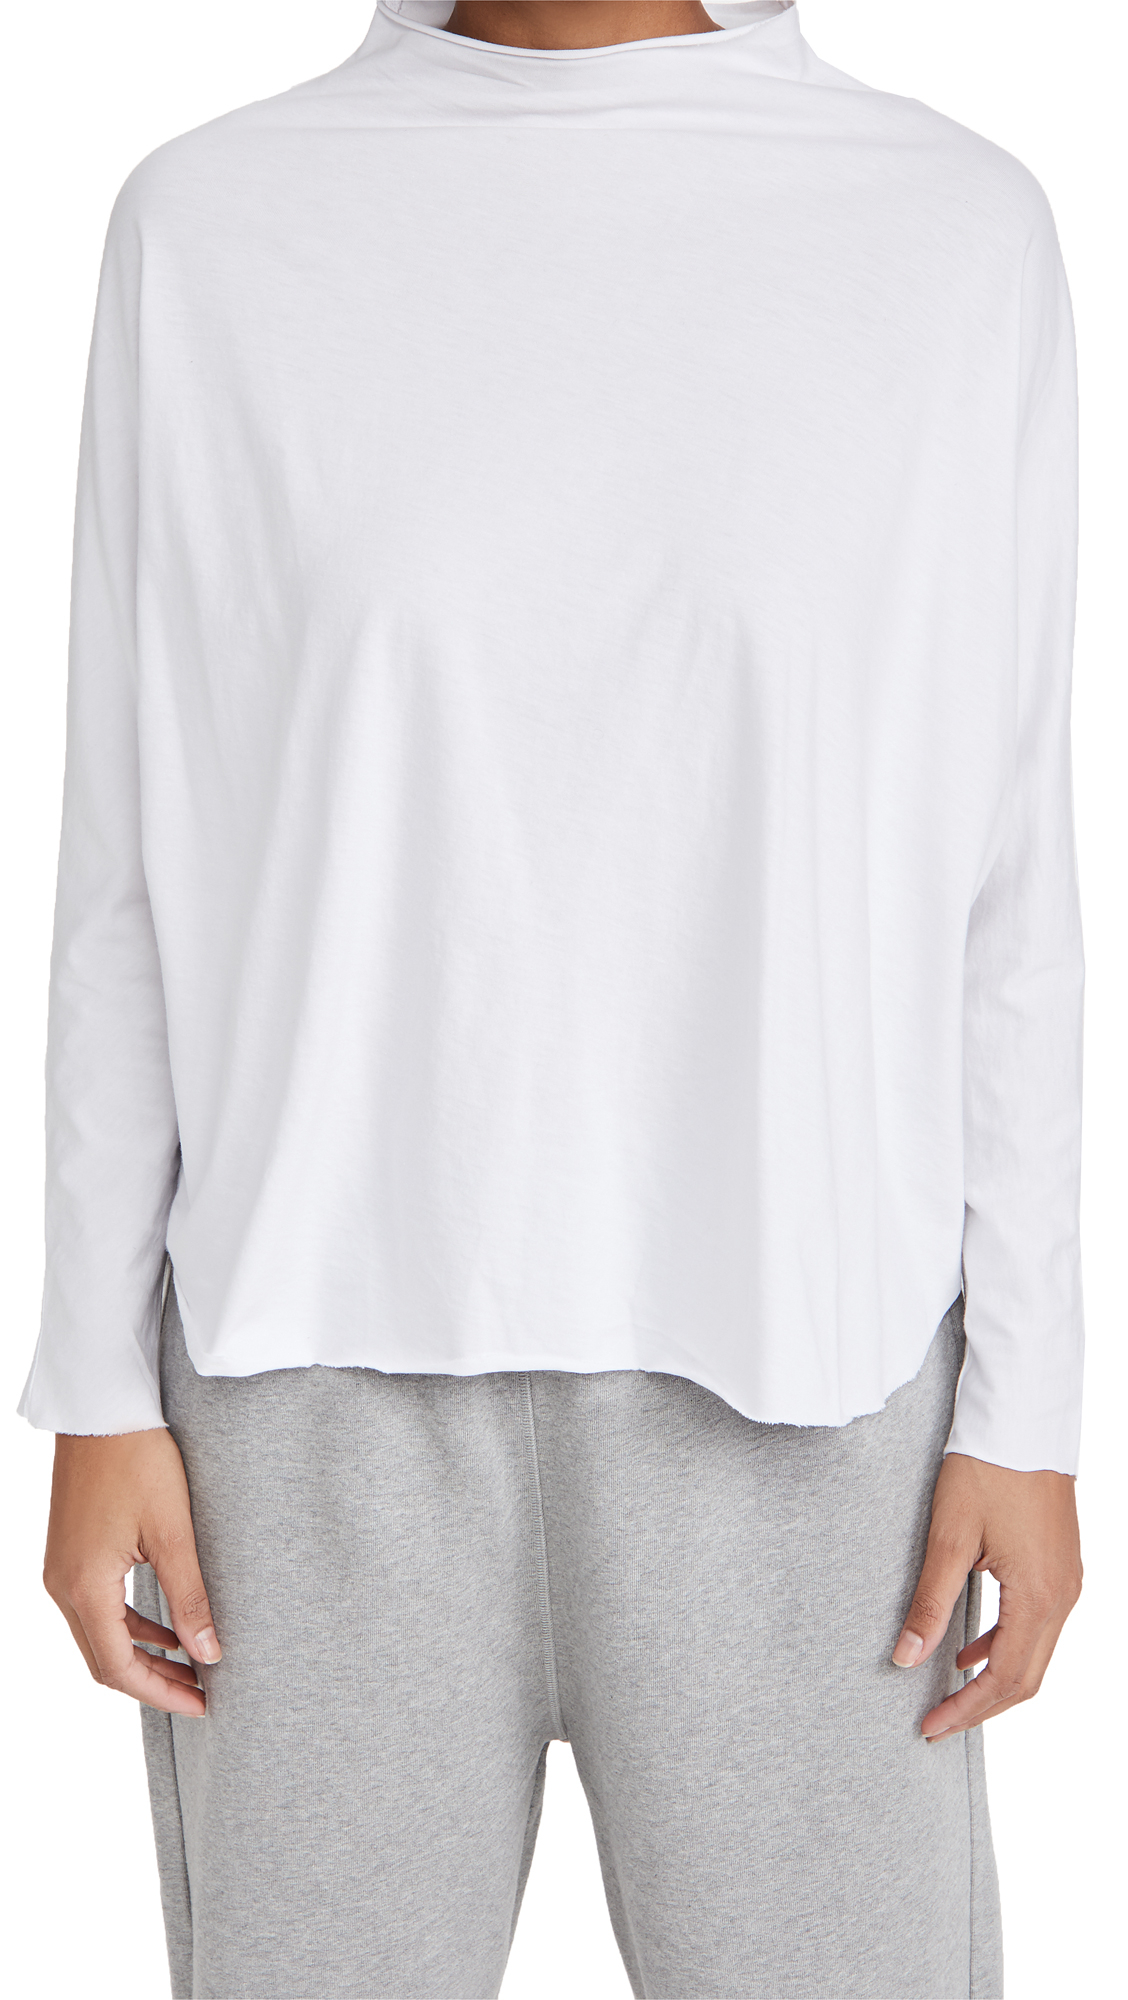 Frank & Eileen Funnel Neck Capelet Top